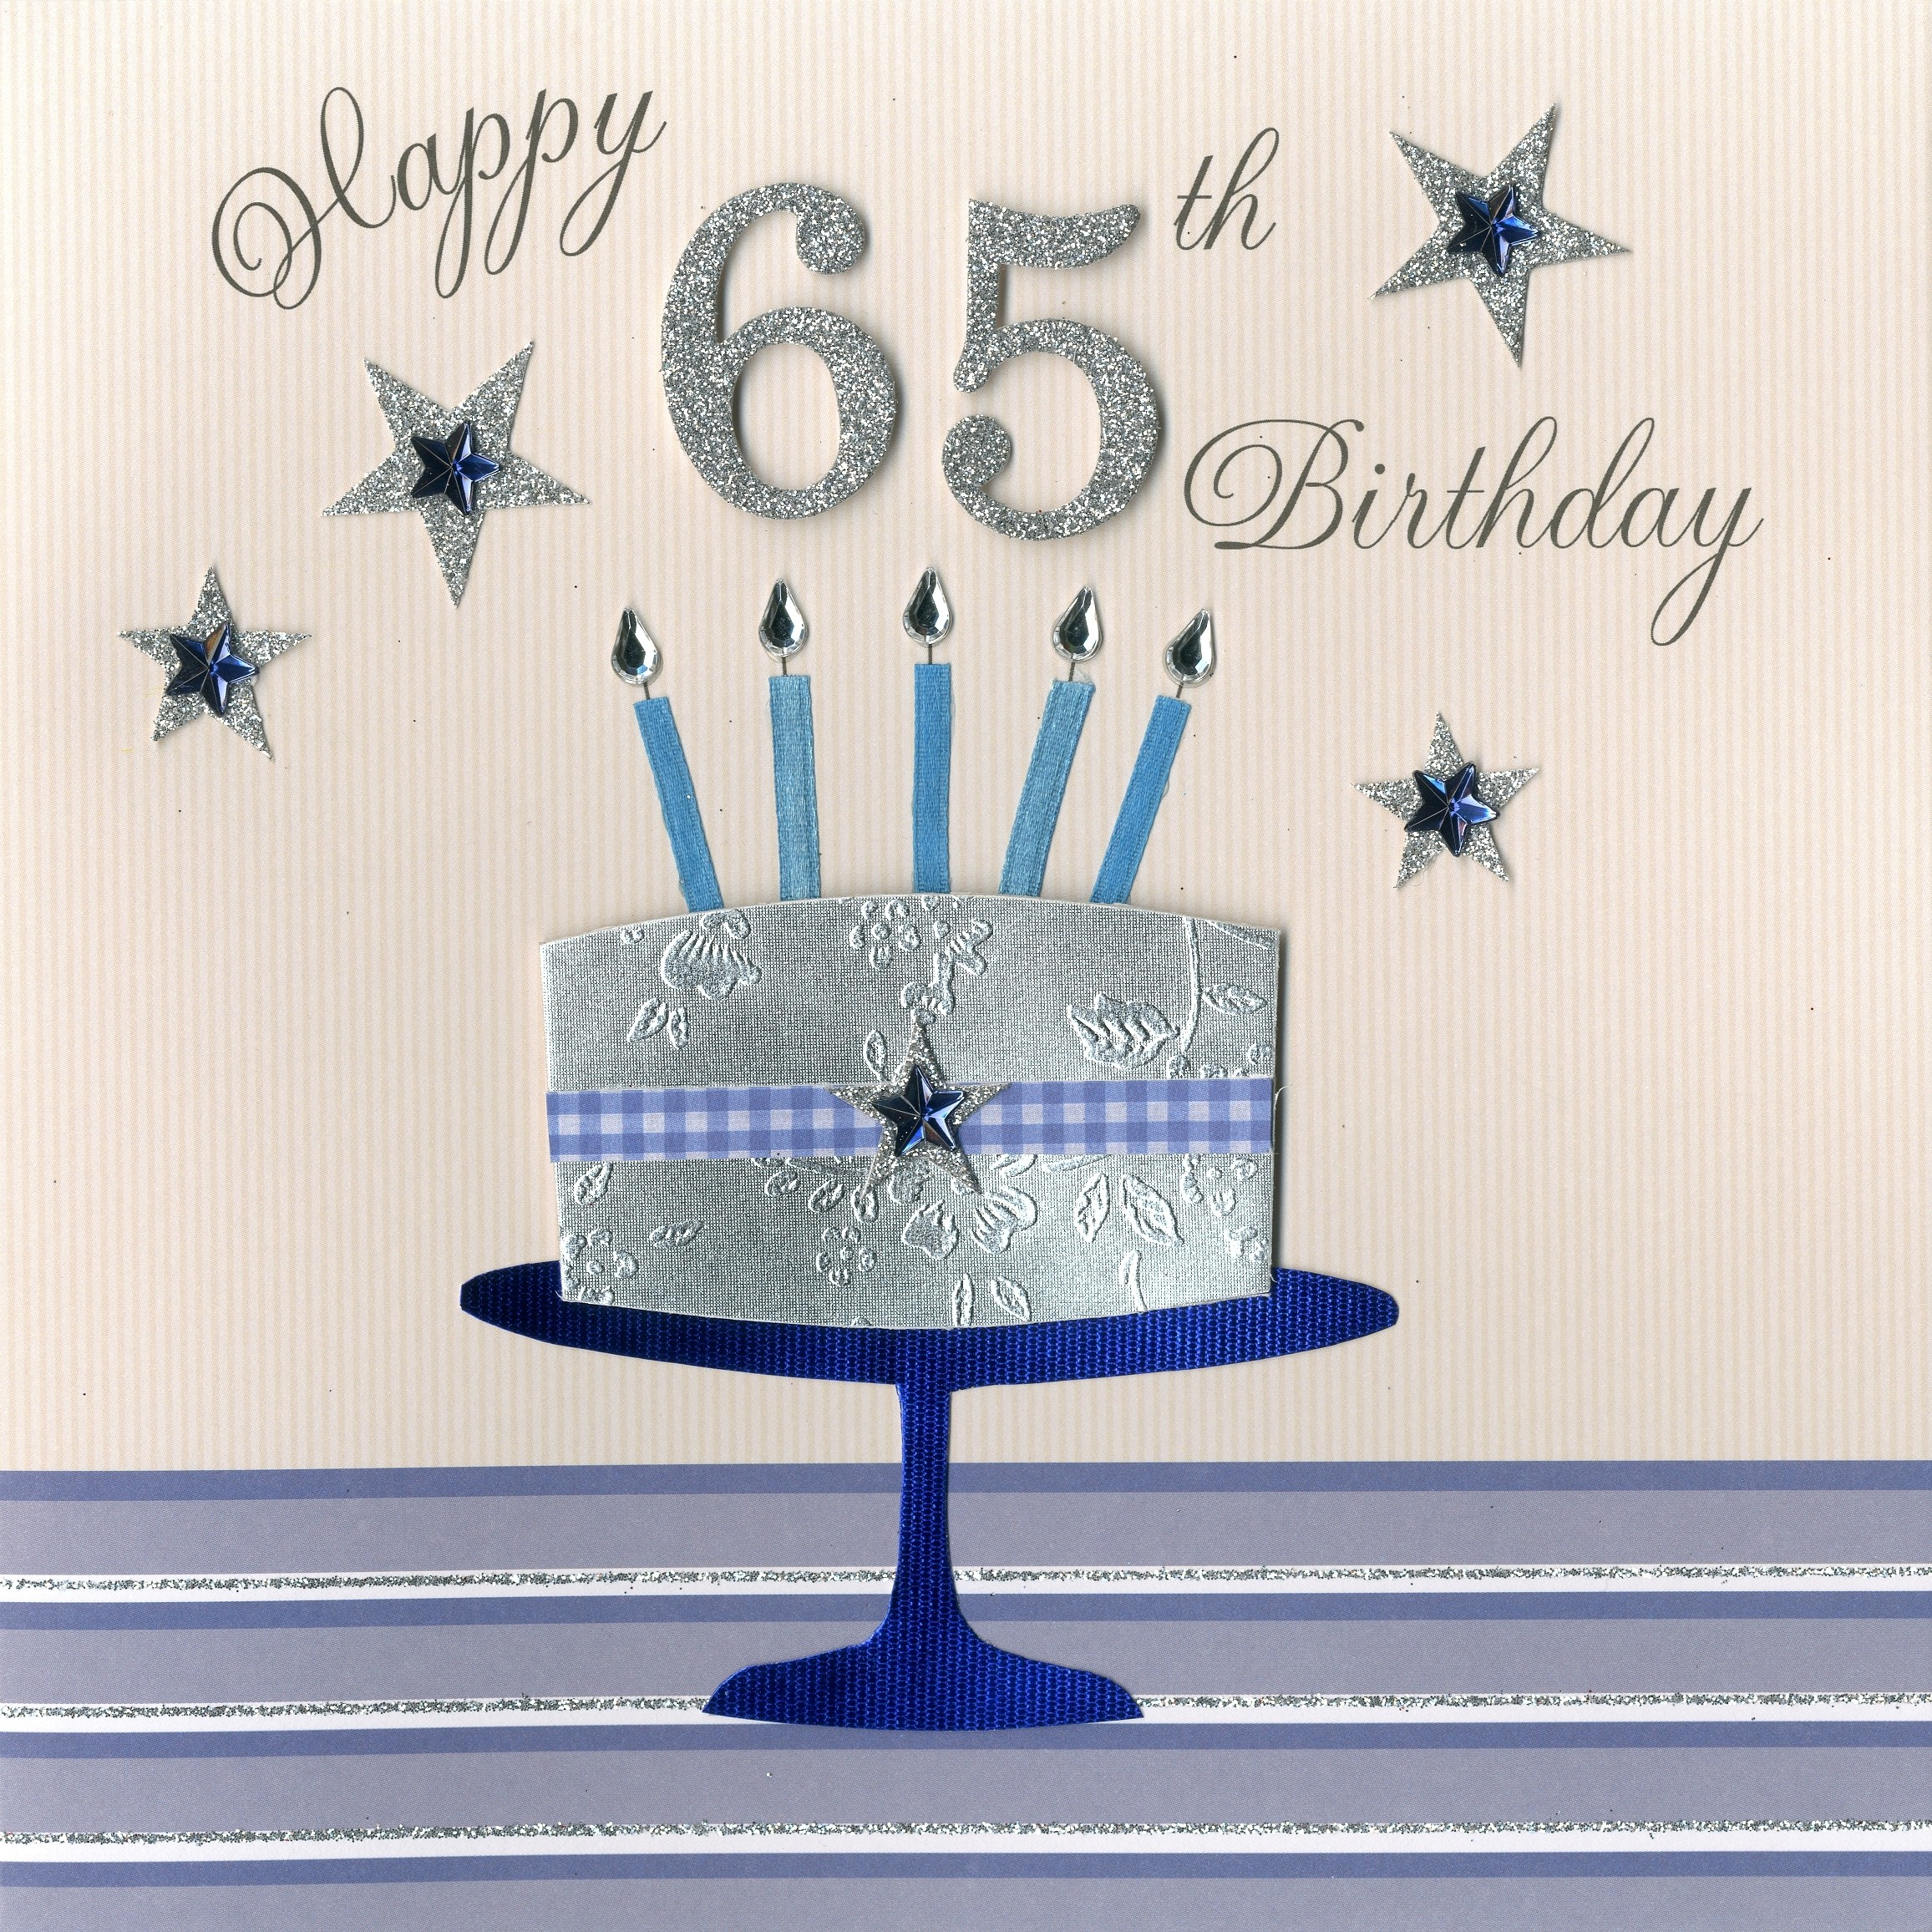 Happy 65th Birthday Cake